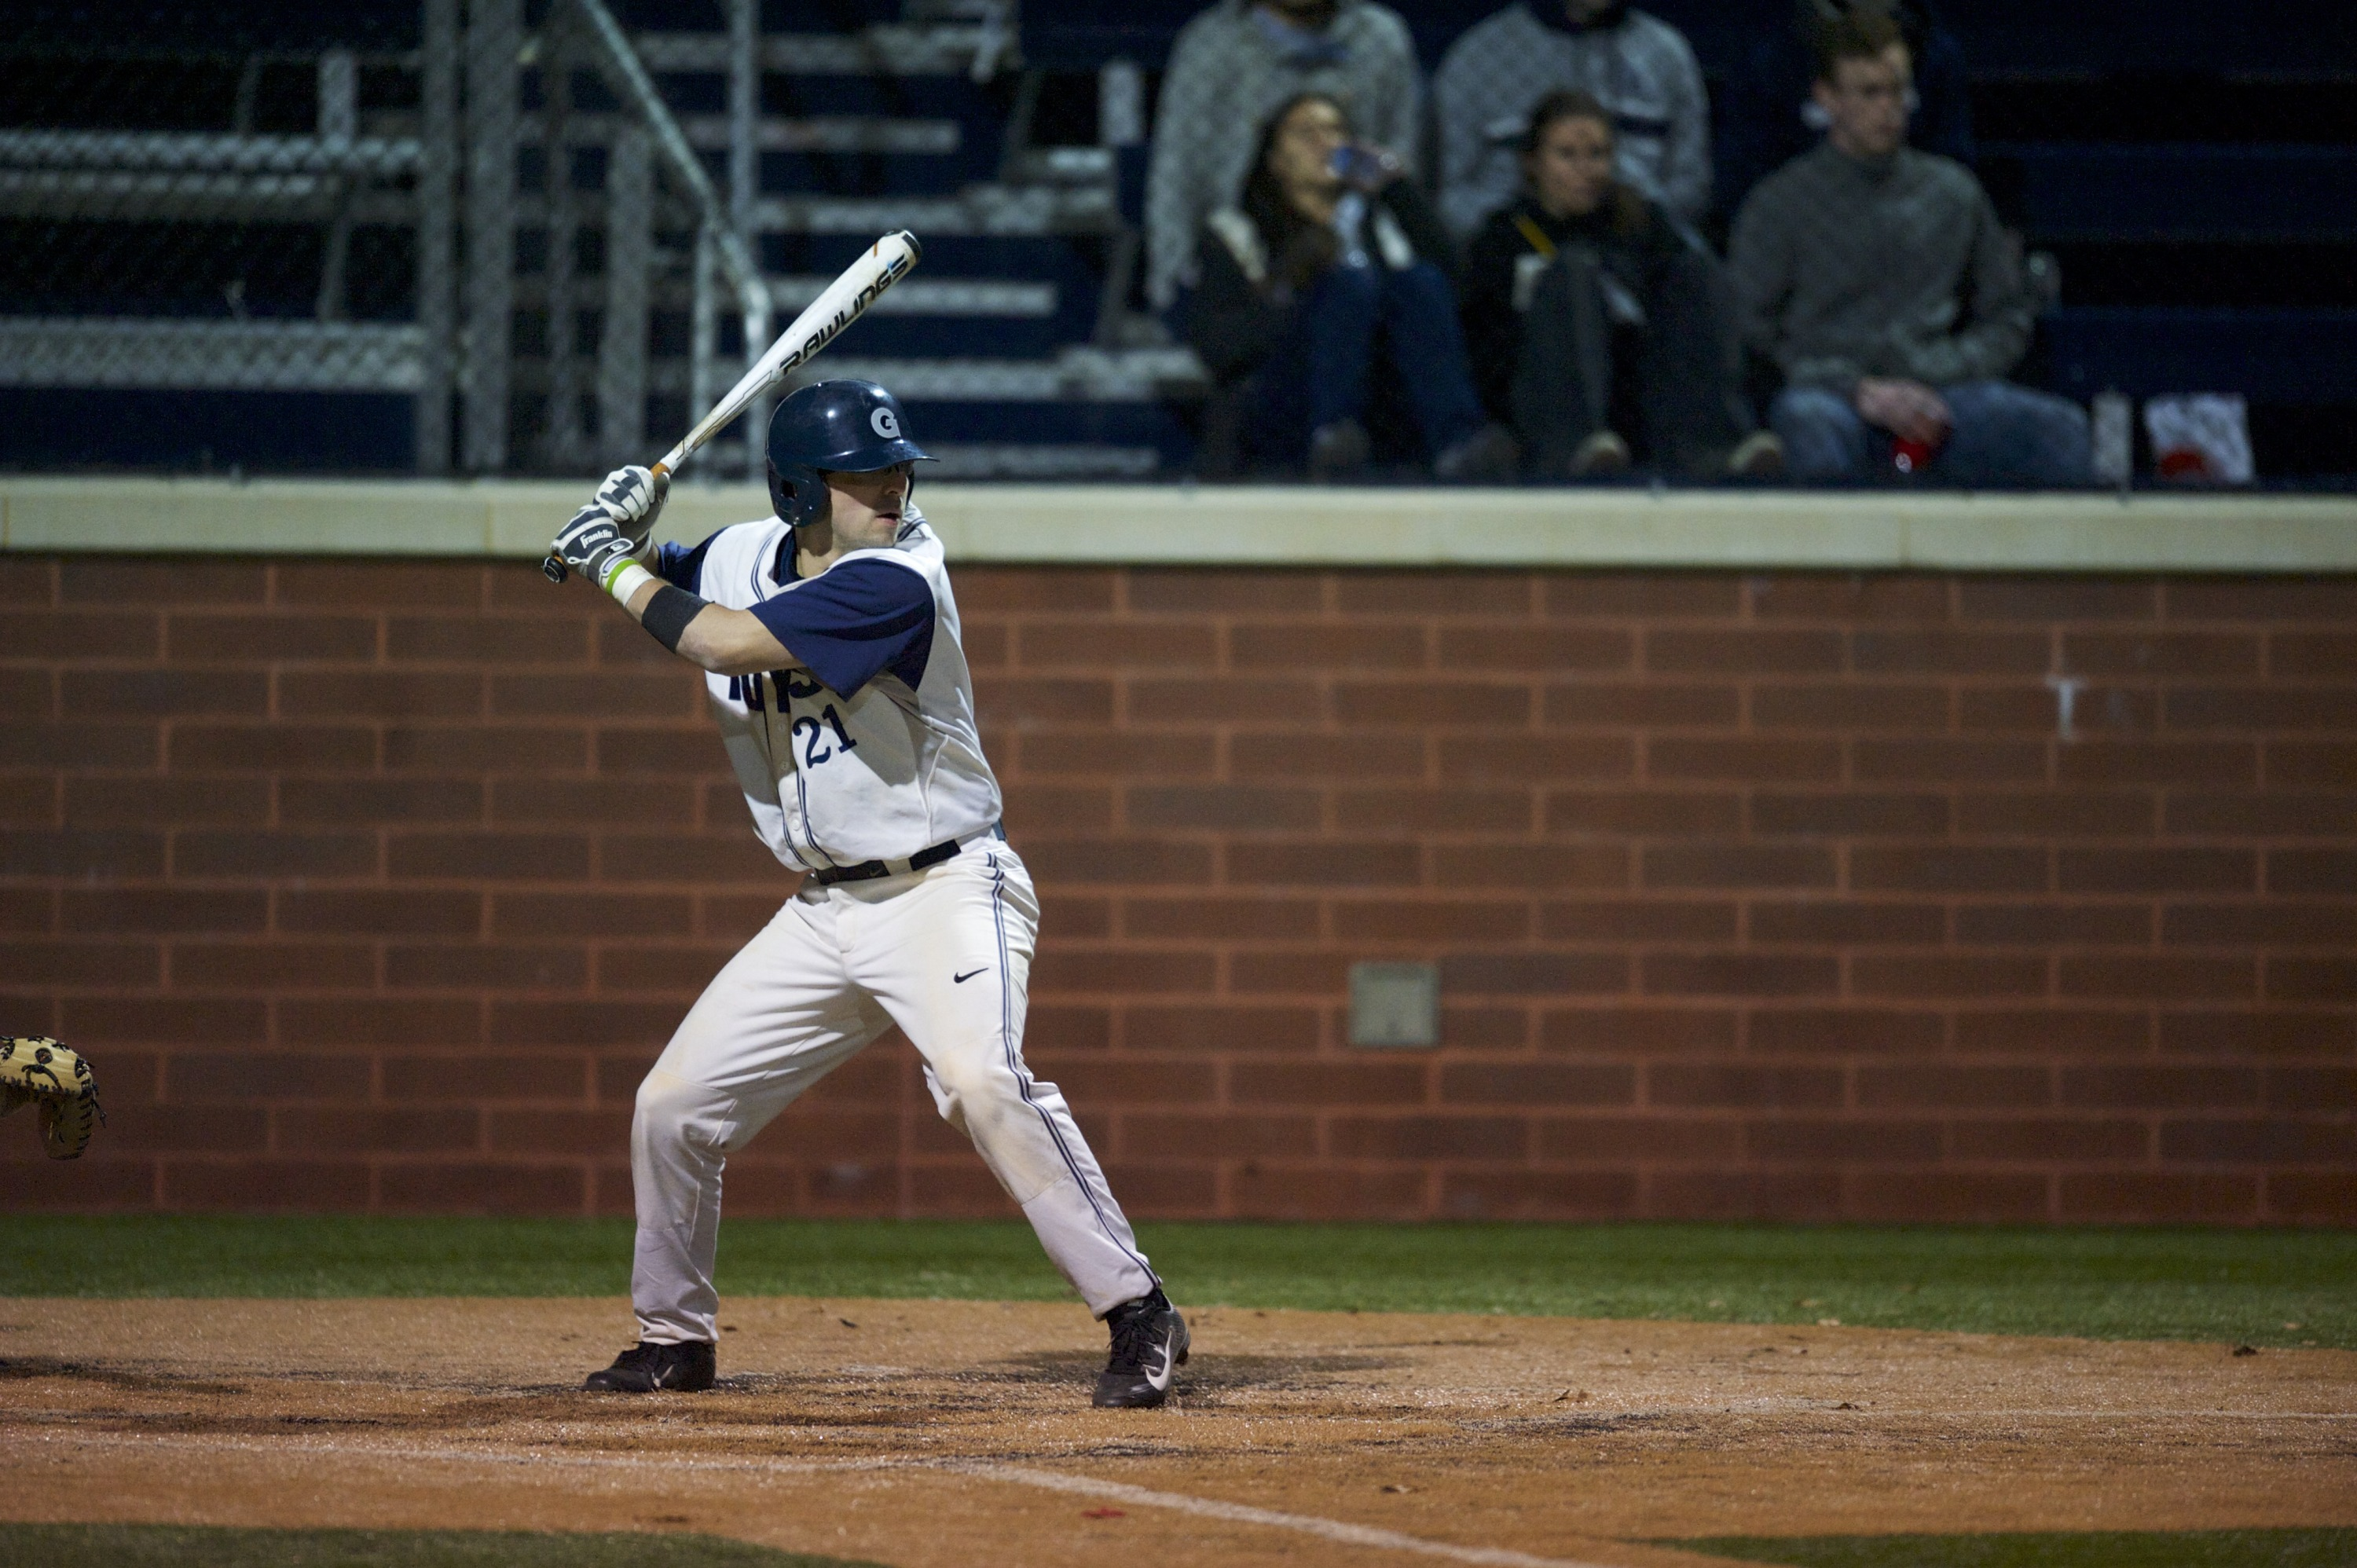 Eric Webber helped lead the Bellingham Bells to a West Coast League championship this summer.